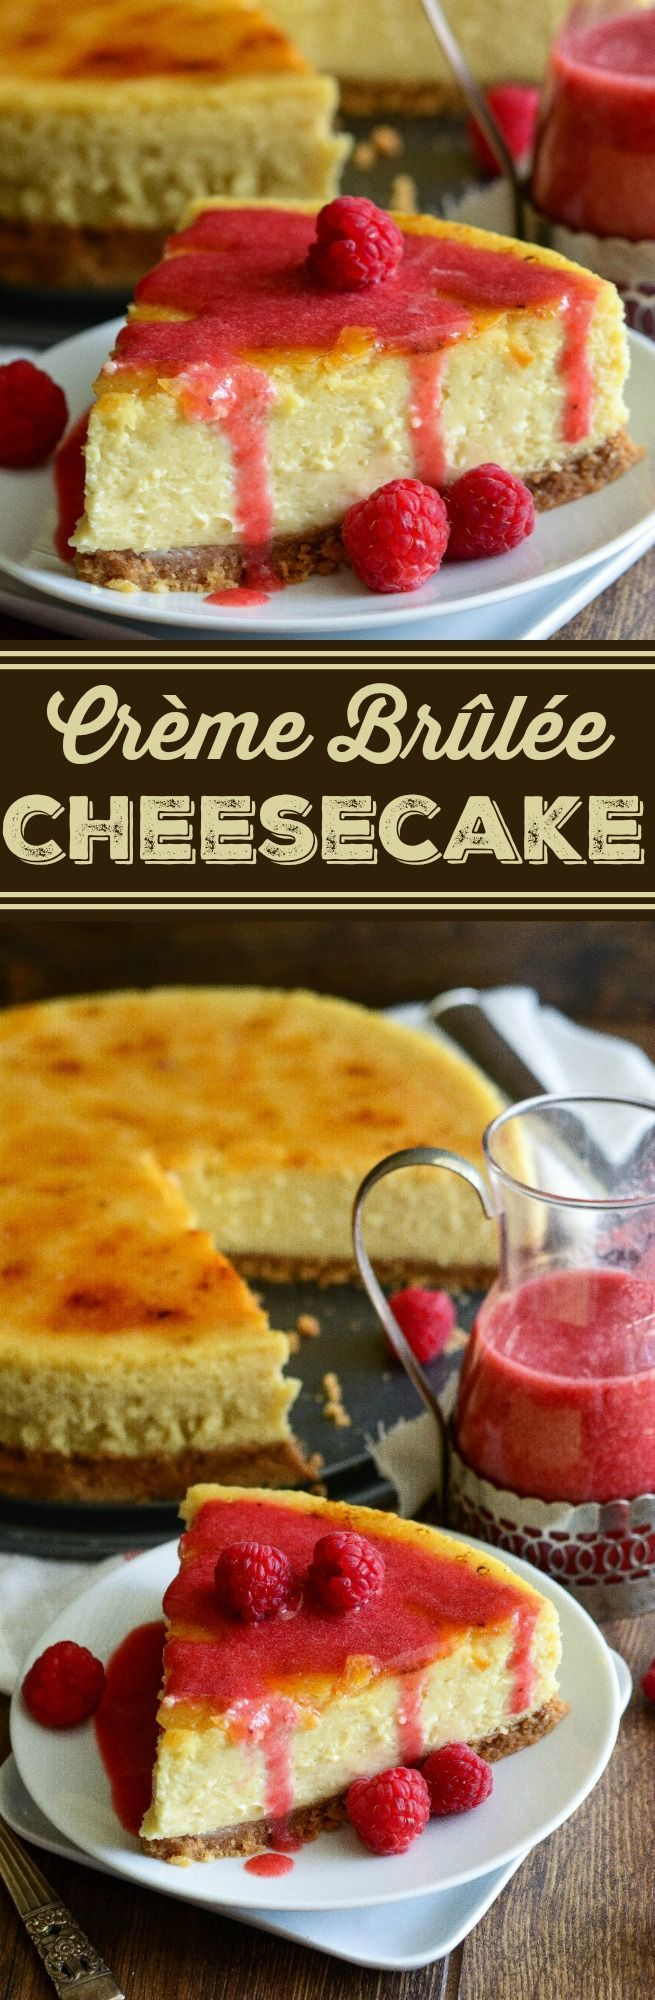 Crème Brûlée Cheesecake with a crunchy signature sugar crust and raspberry…